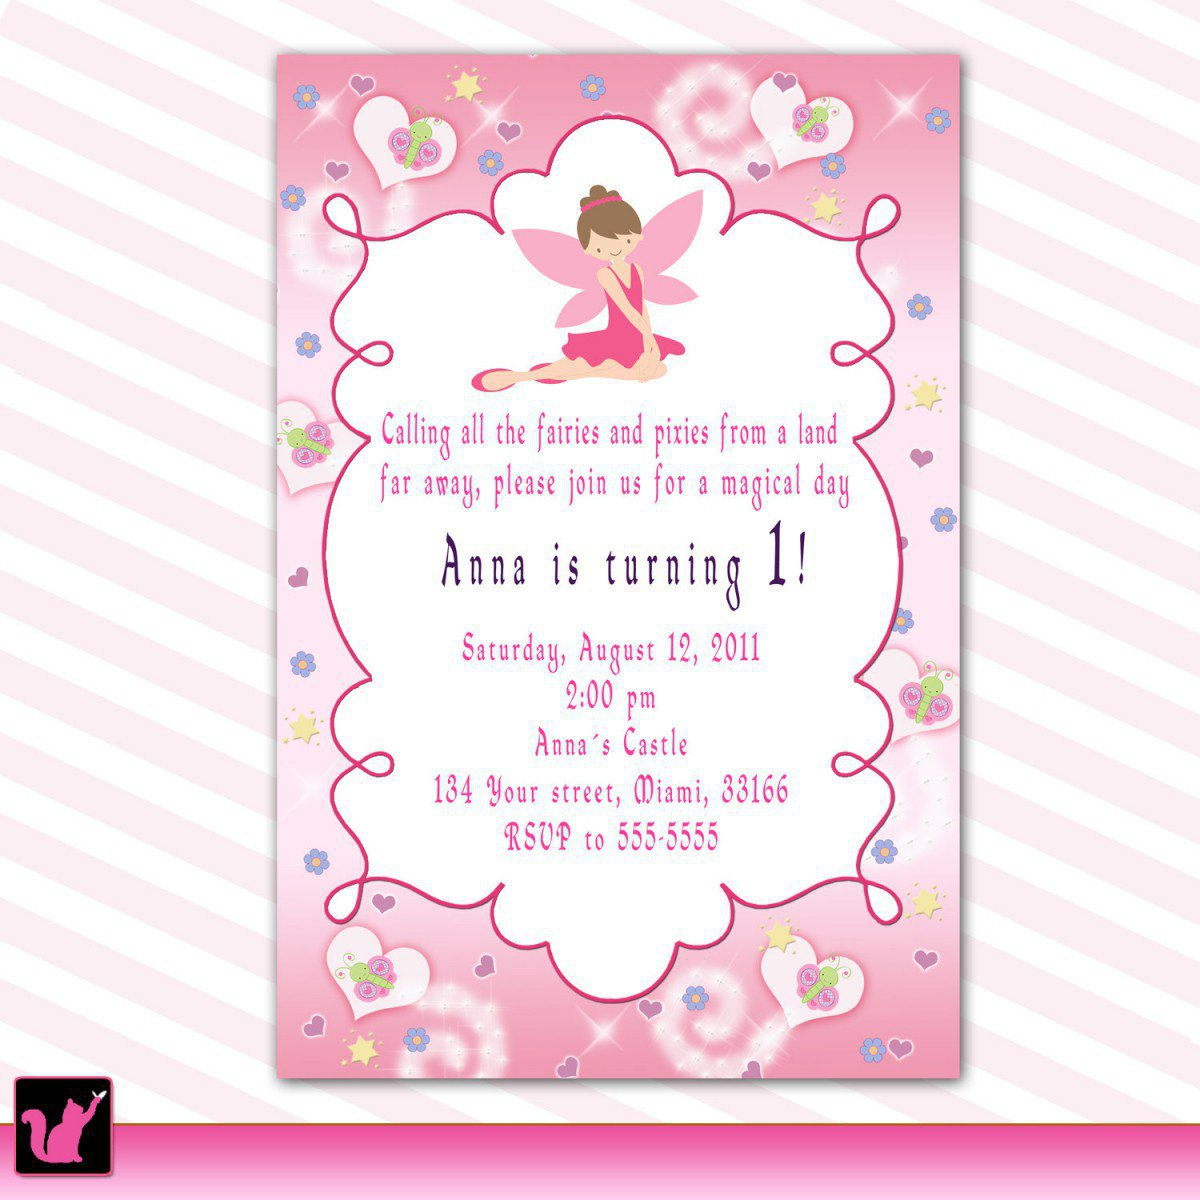 Free Printable Birthday Invitations Princess And The Frog – Disney Princess Printable Birthday Cards